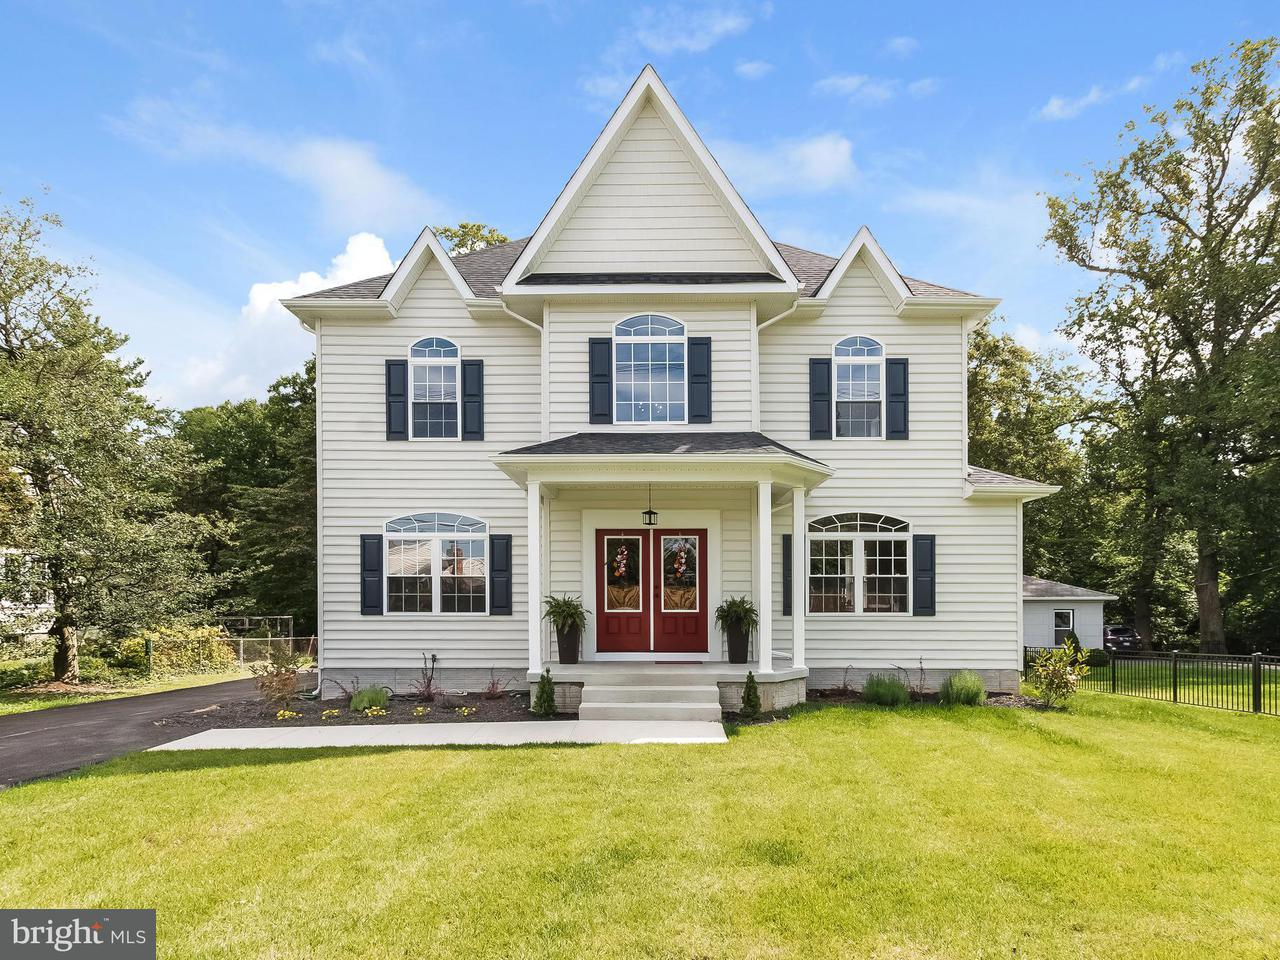 Single Family Home for Sale at 17 ROLLING RD N 17 ROLLING RD N Catonsville, Maryland 21228 United States